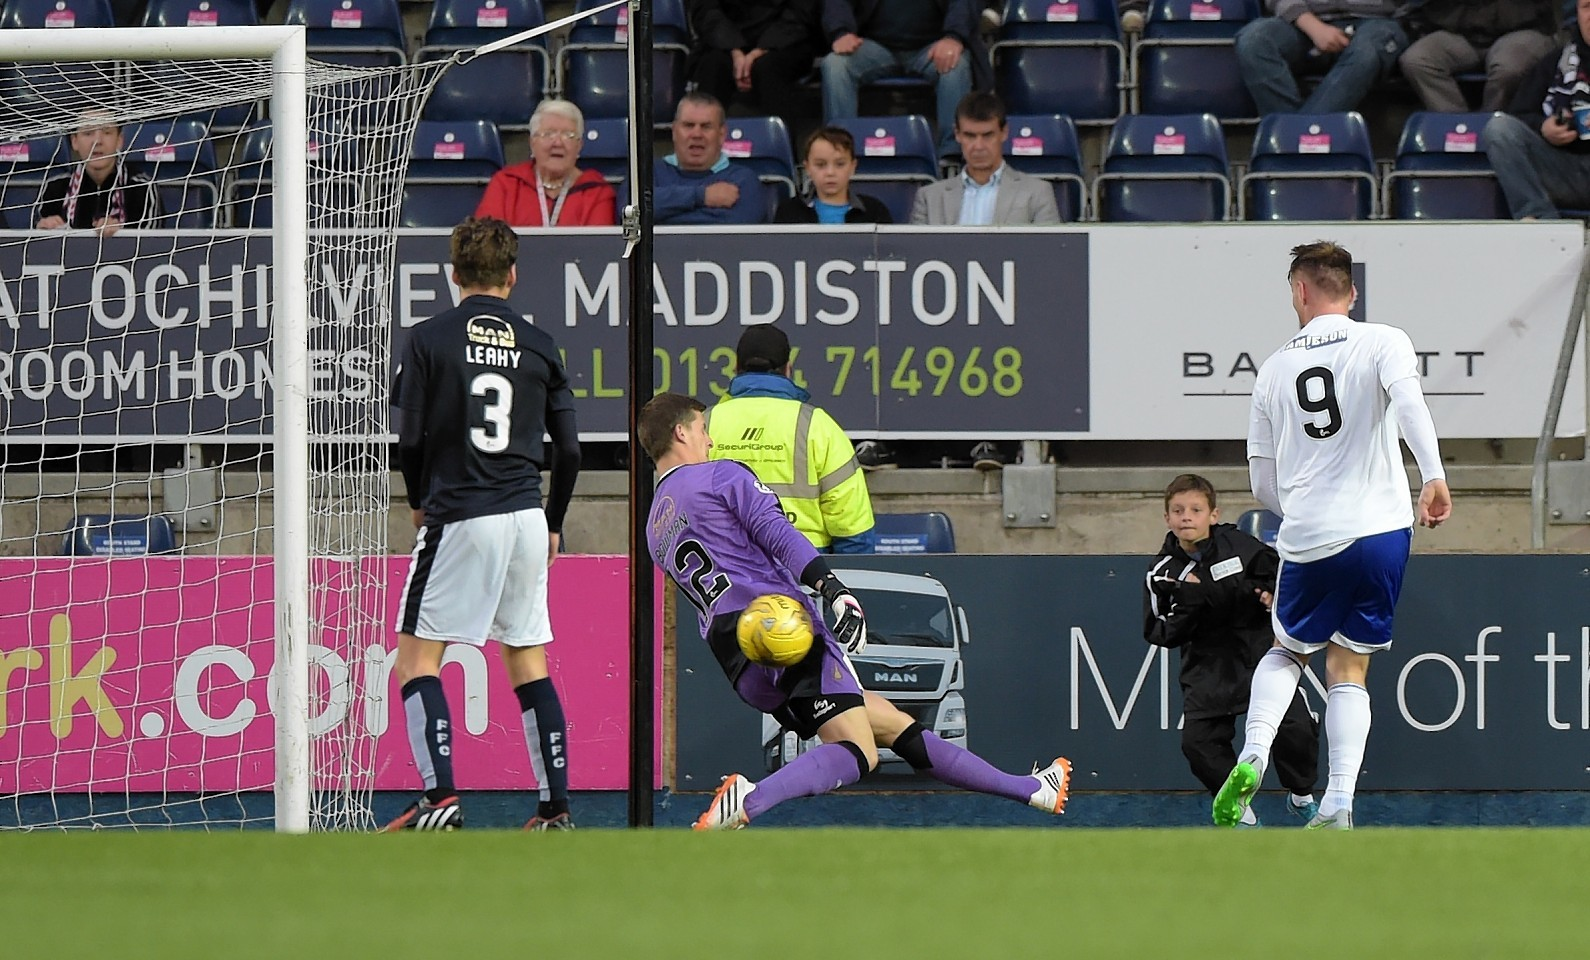 Peterhead's Rory McAllister (right) scores his hat-trick